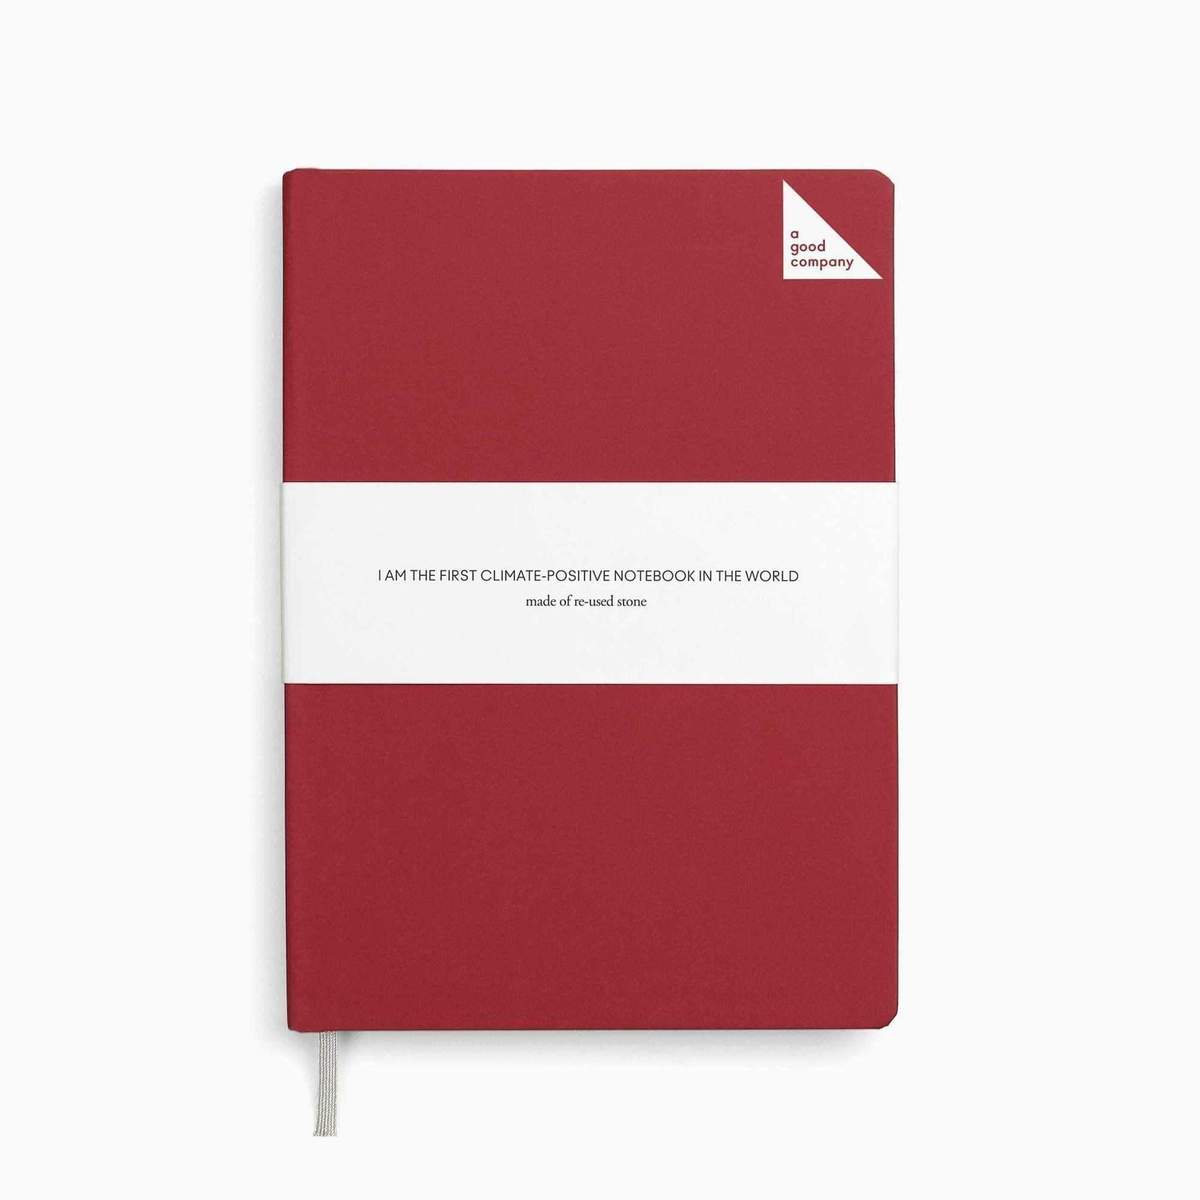 A5 Stone Paper Notebook | A Good Company